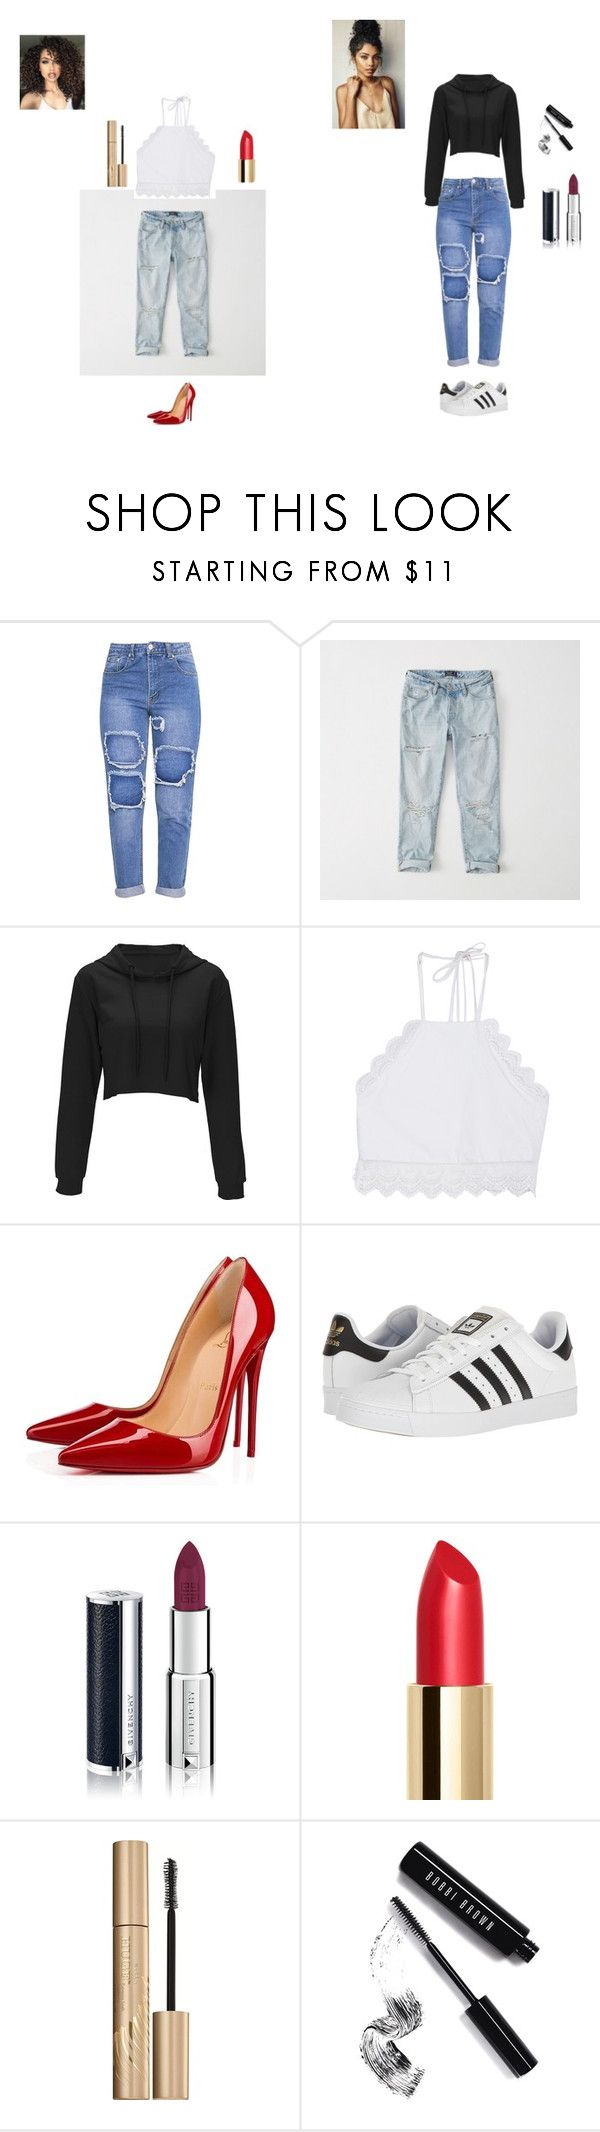 """""""Rita's fashion trend"""" by ritabrown175 on Polyvore featuring ASAP, Abercrombie & Fitch, Front Row Shop, Christian Louboutin, adidas, Givenchy, Stila and Bobbi Brown Cosmetics"""